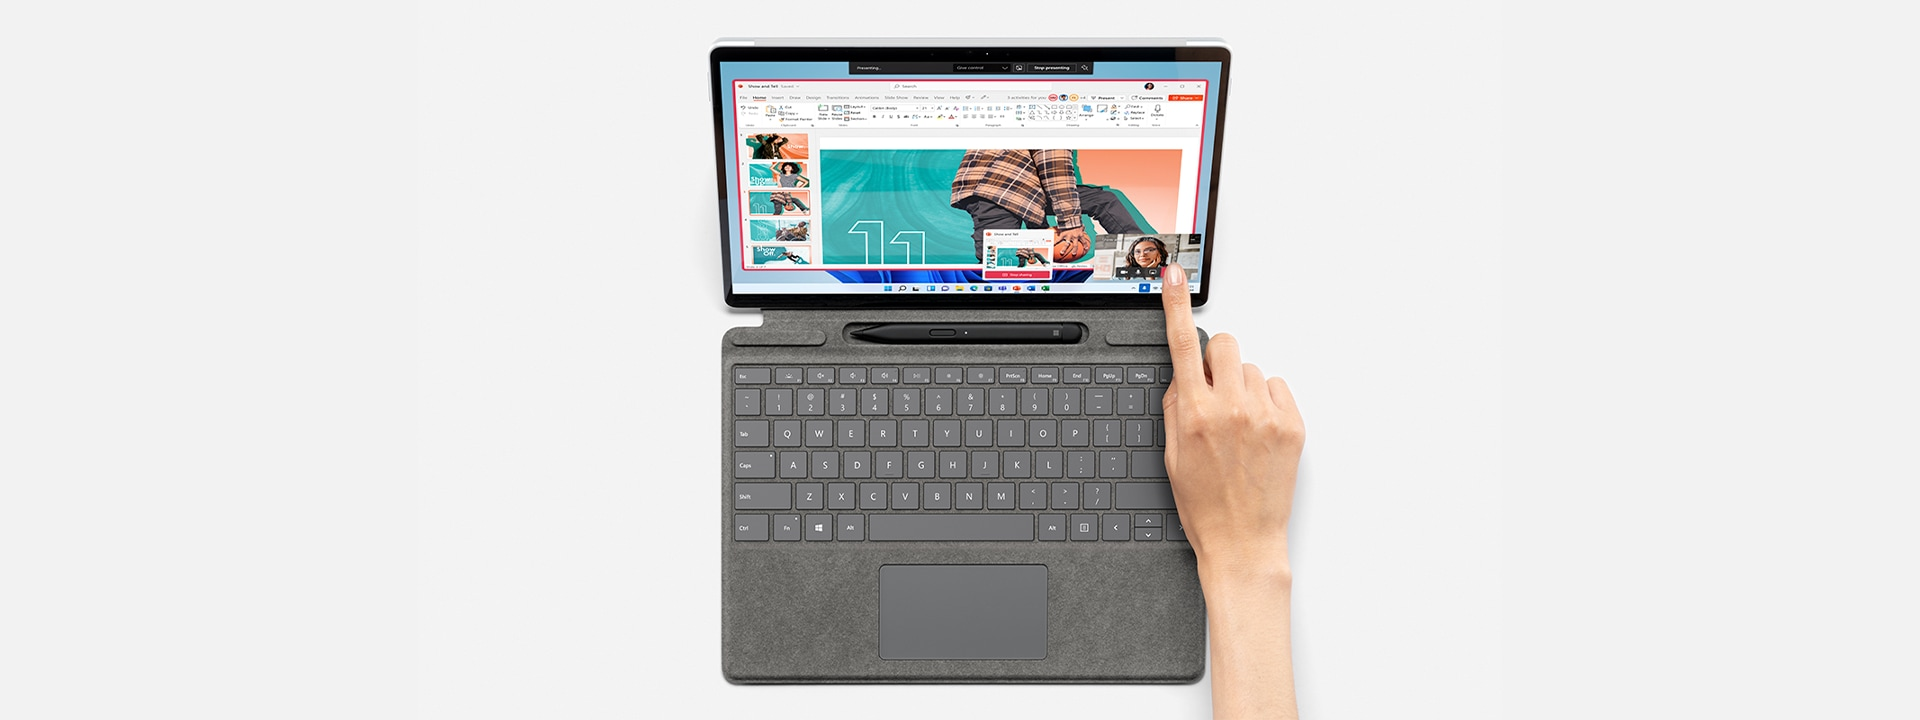 Surface Pro 8 shown with Pro Signature Keyboard and Slim Pen 2.